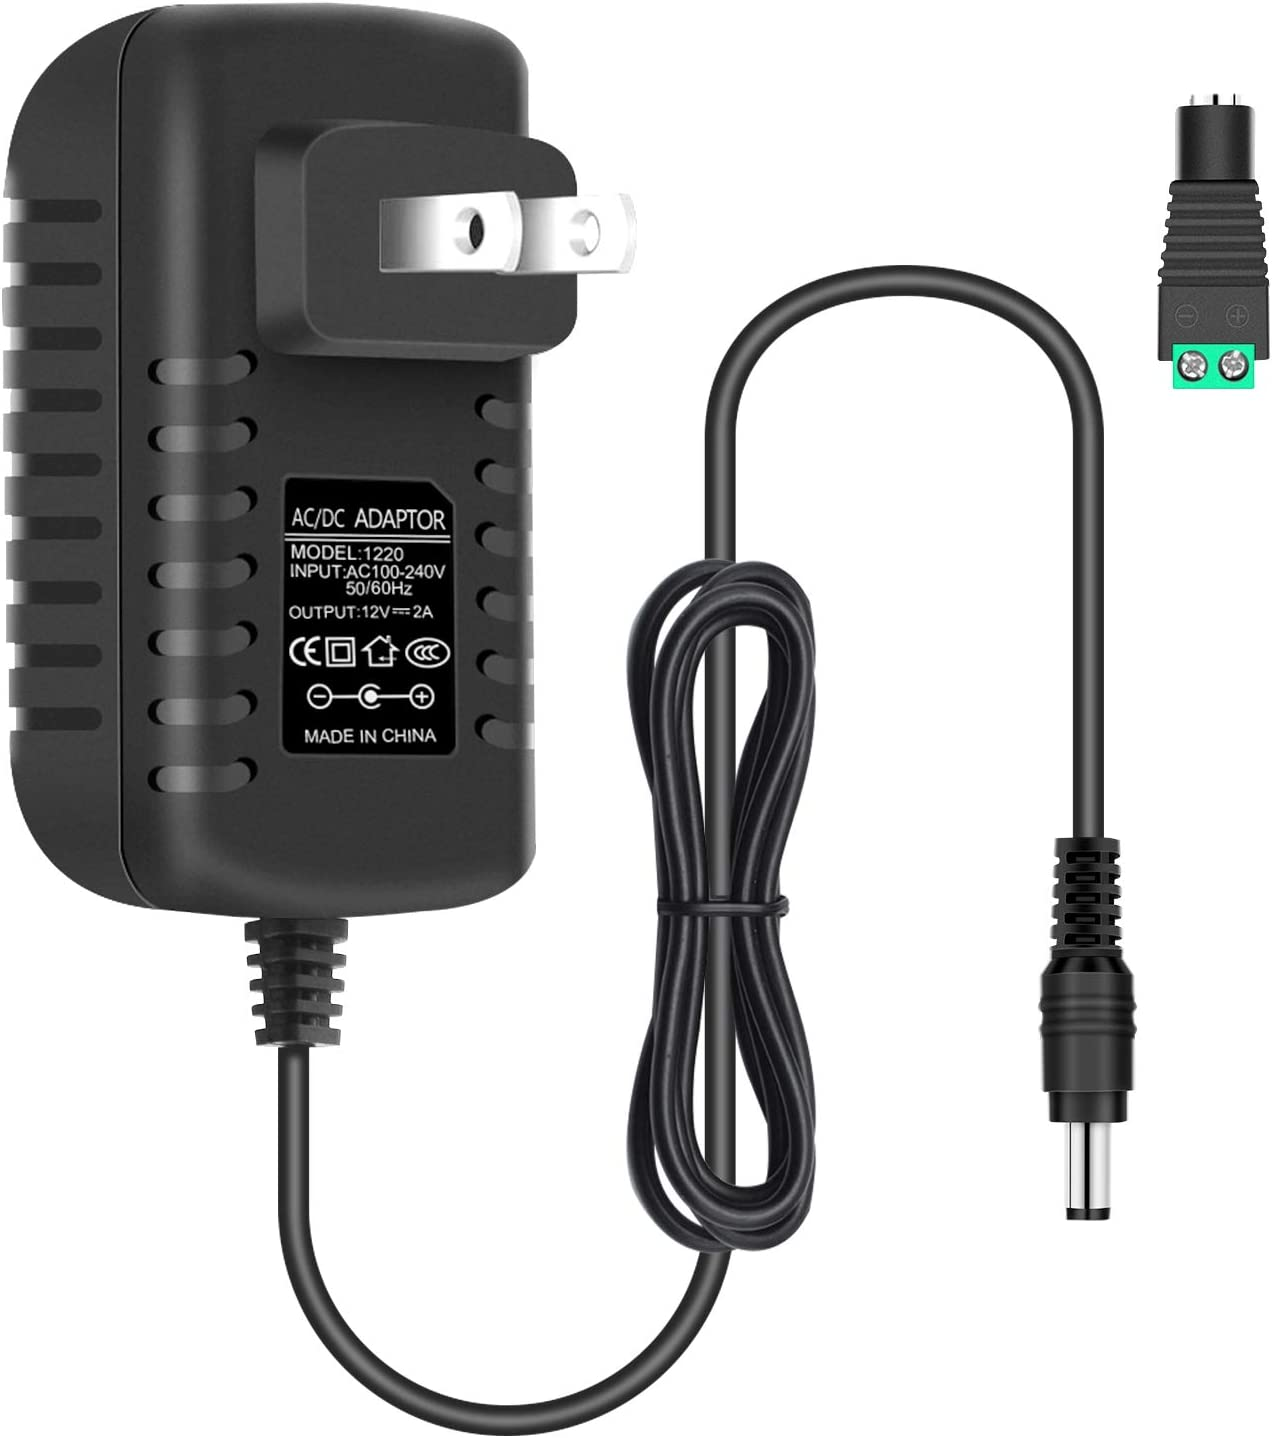 12V 2A 24W LED Strip Power Supply, Wall Mounted AC 100-240V to 12V DC Power Adapter, Switching Transformer with 5.5/2.1 DC Female Barrel Connector to Screw Adaptor for Low Voltage Devices